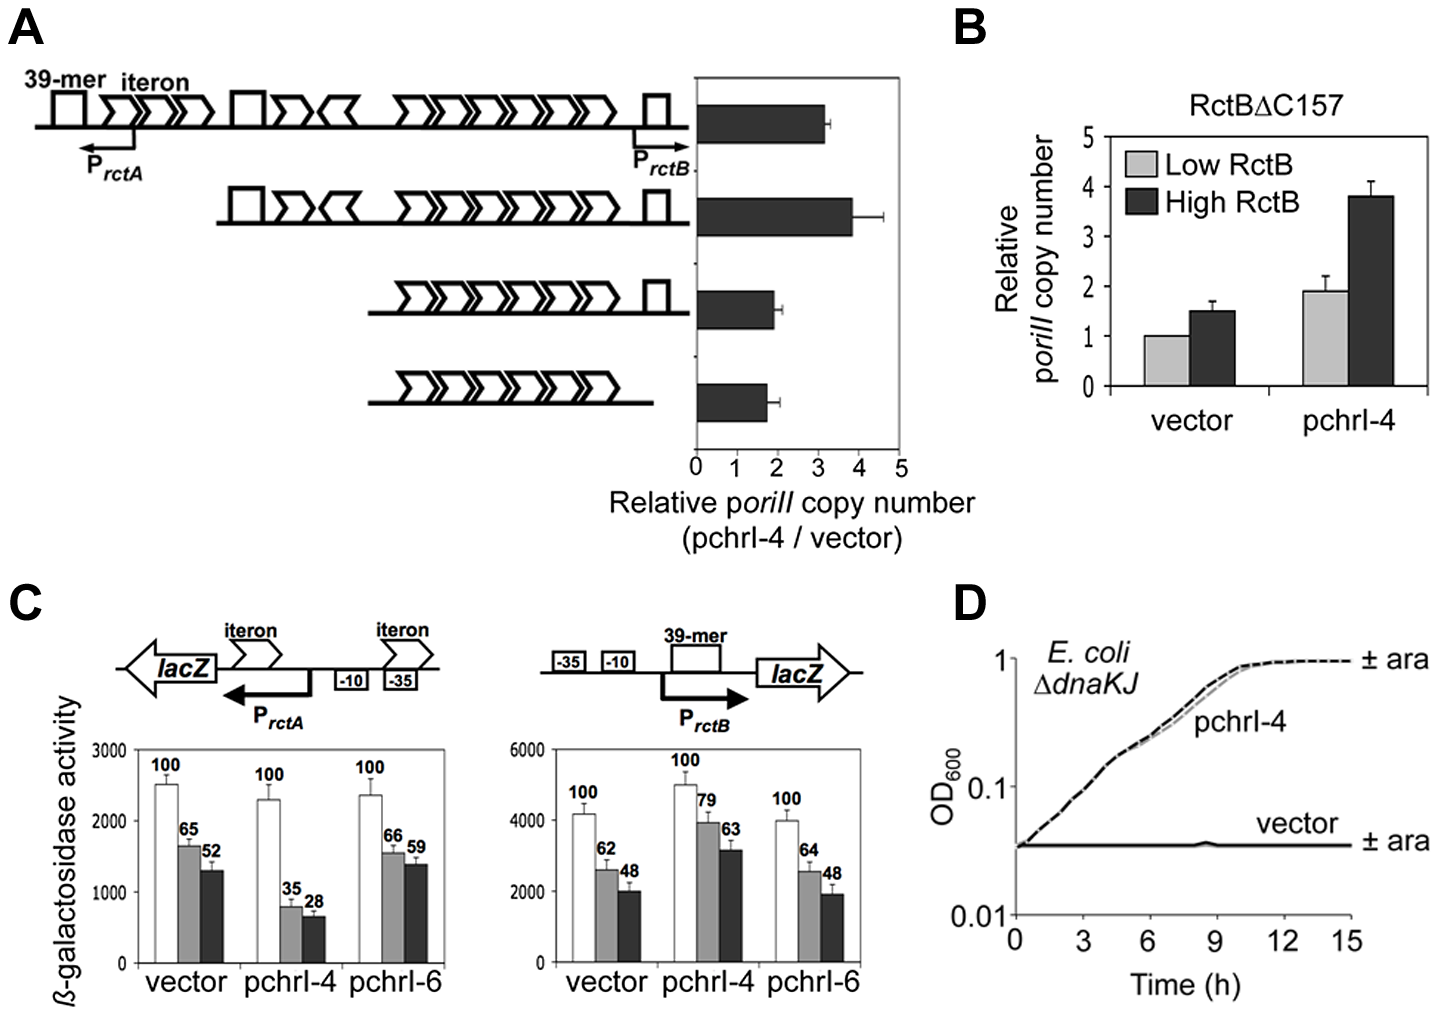 The chrI site modulates DNA binding of RctB and enhances p<i>oriII</i> activity in Δ<i>dnaKJ</i> host.